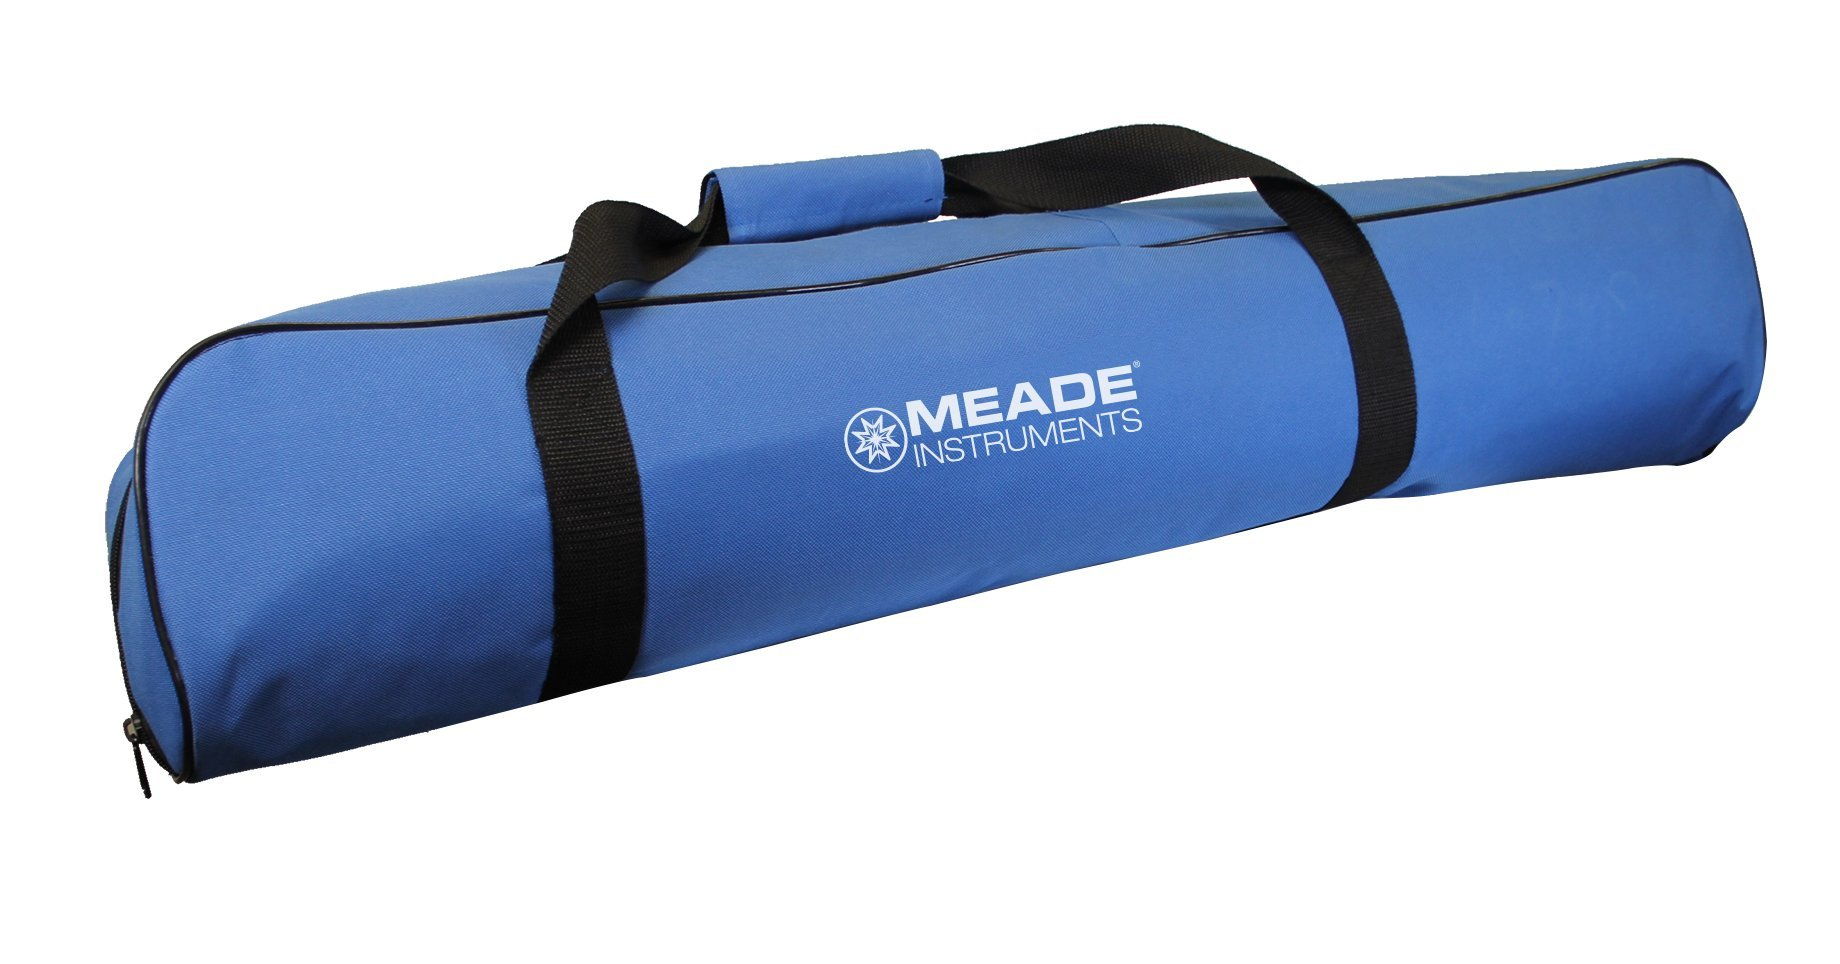 Meade Instruments 609002 Infinity 80-90-102mm Carry Bag Telescope, Blue by Meade Instruments